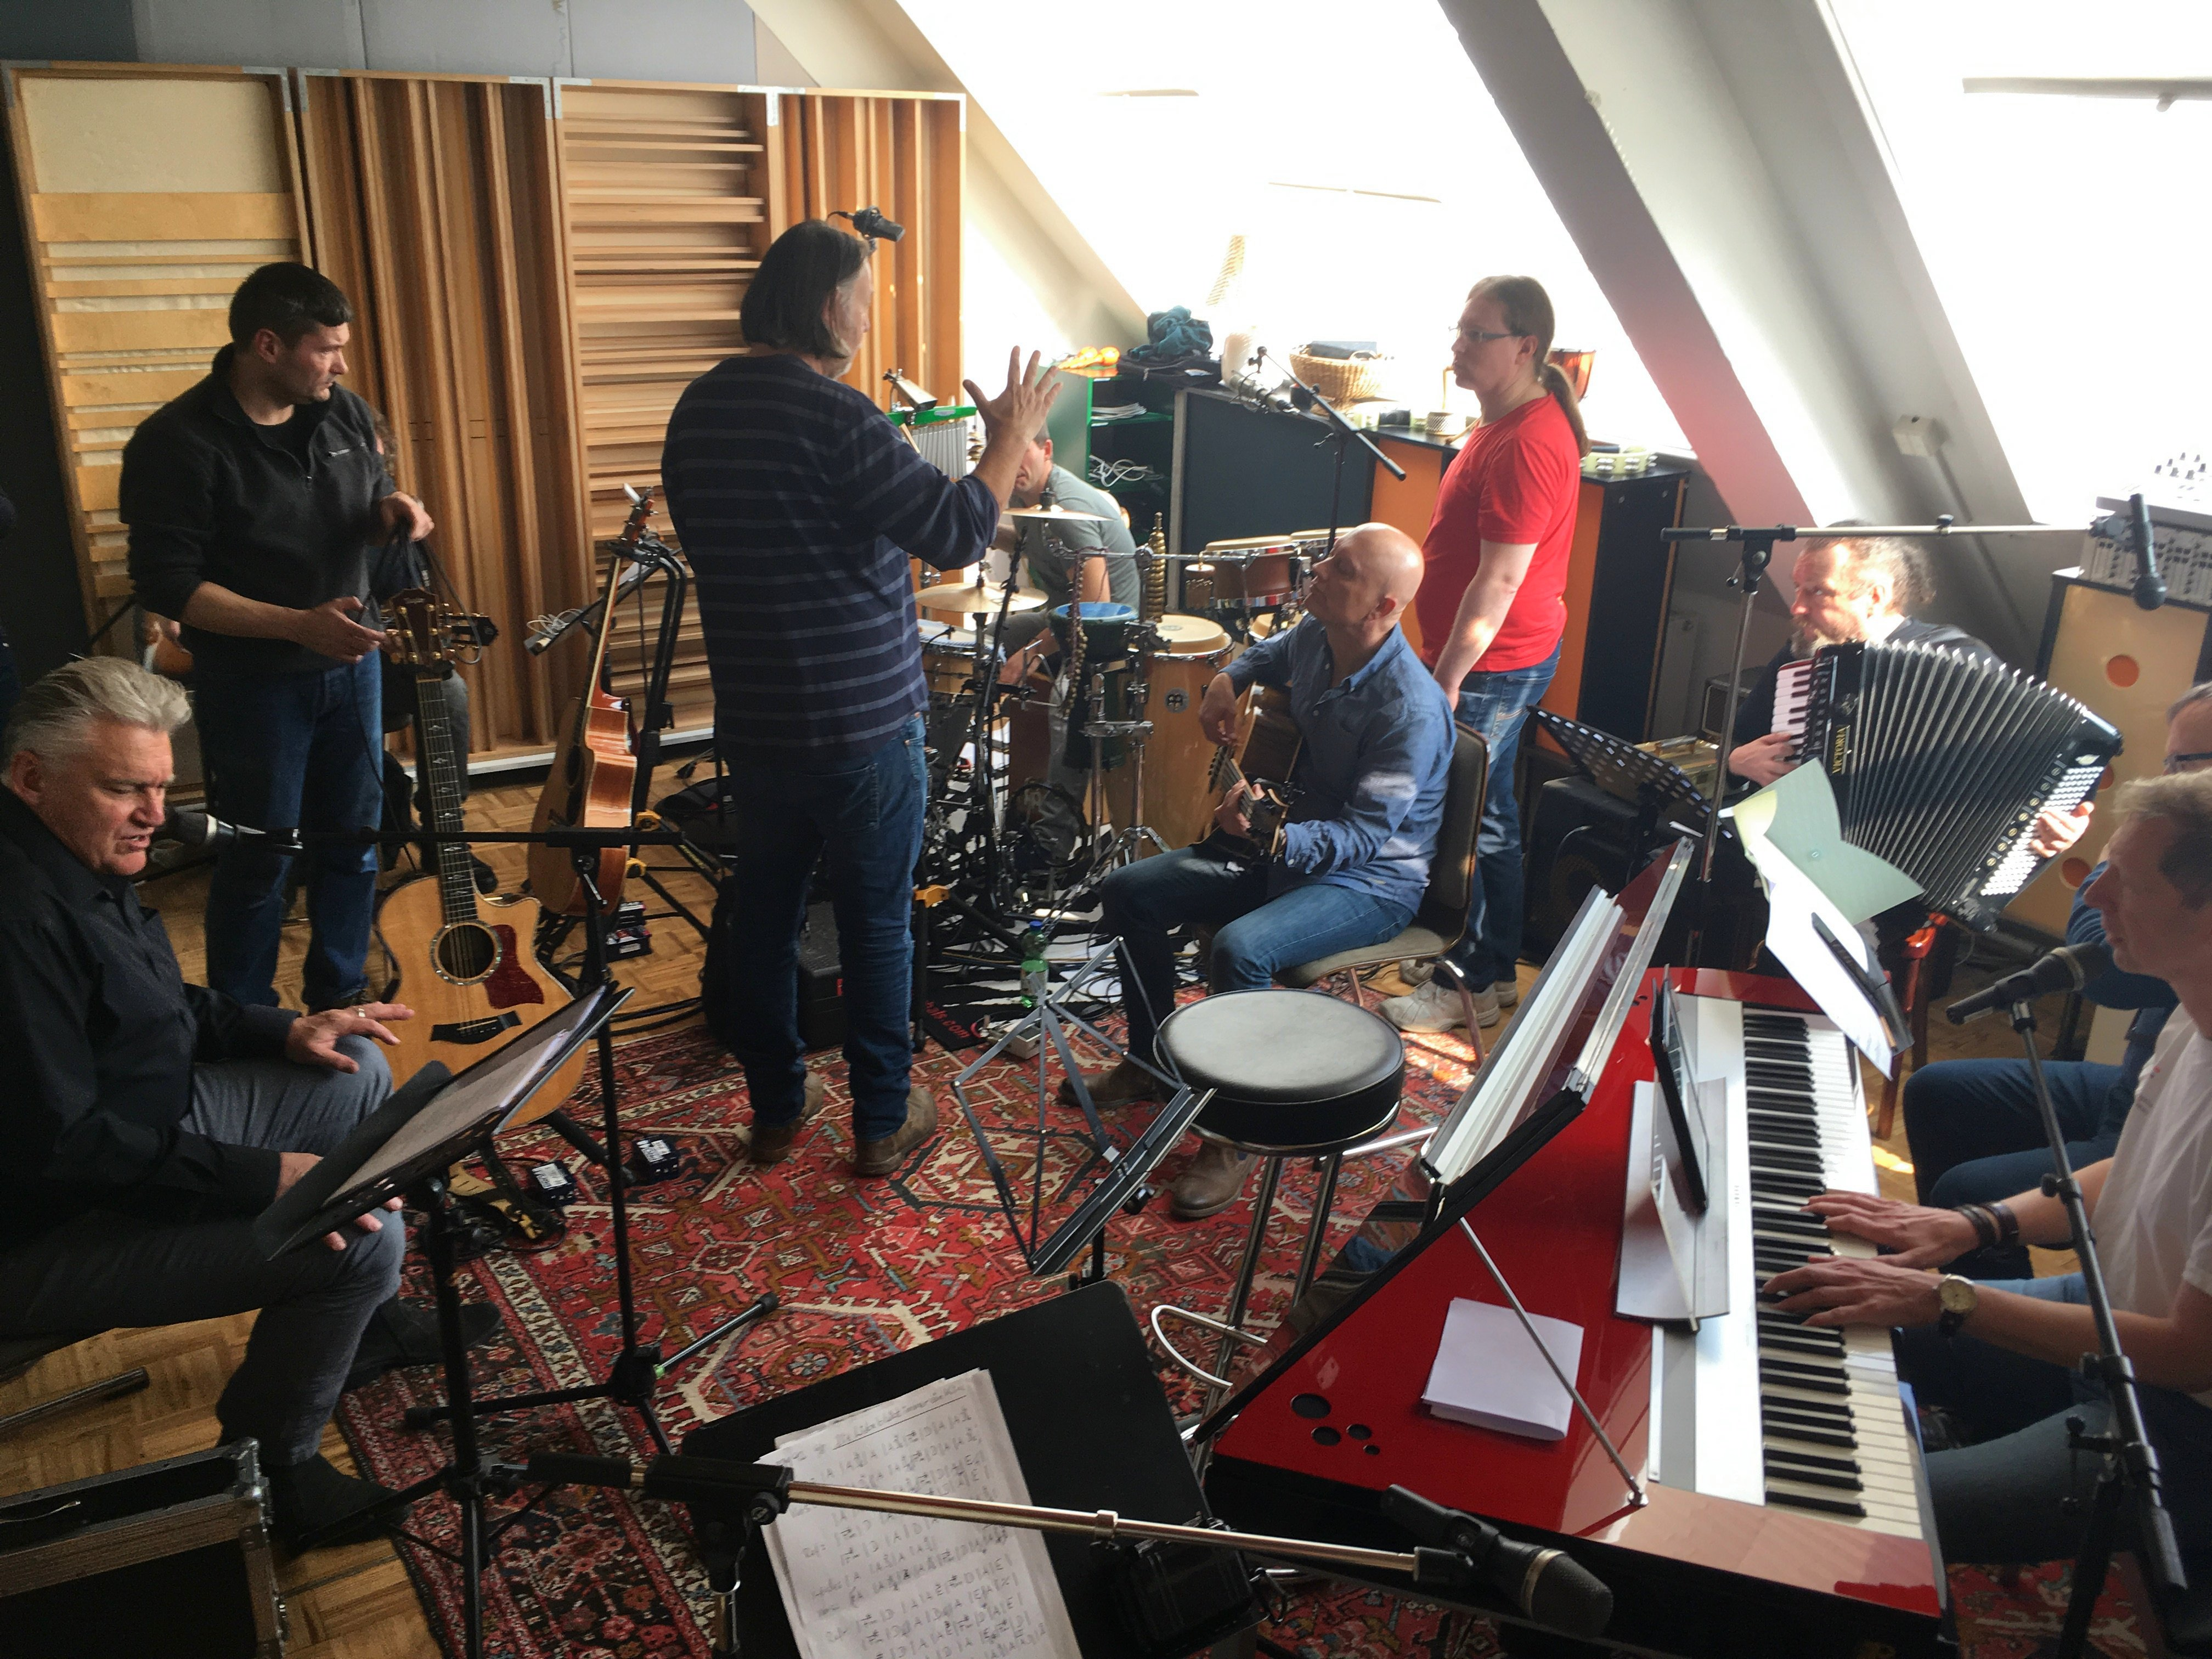 Rainhard Fendrich mit Band im Vintage Room